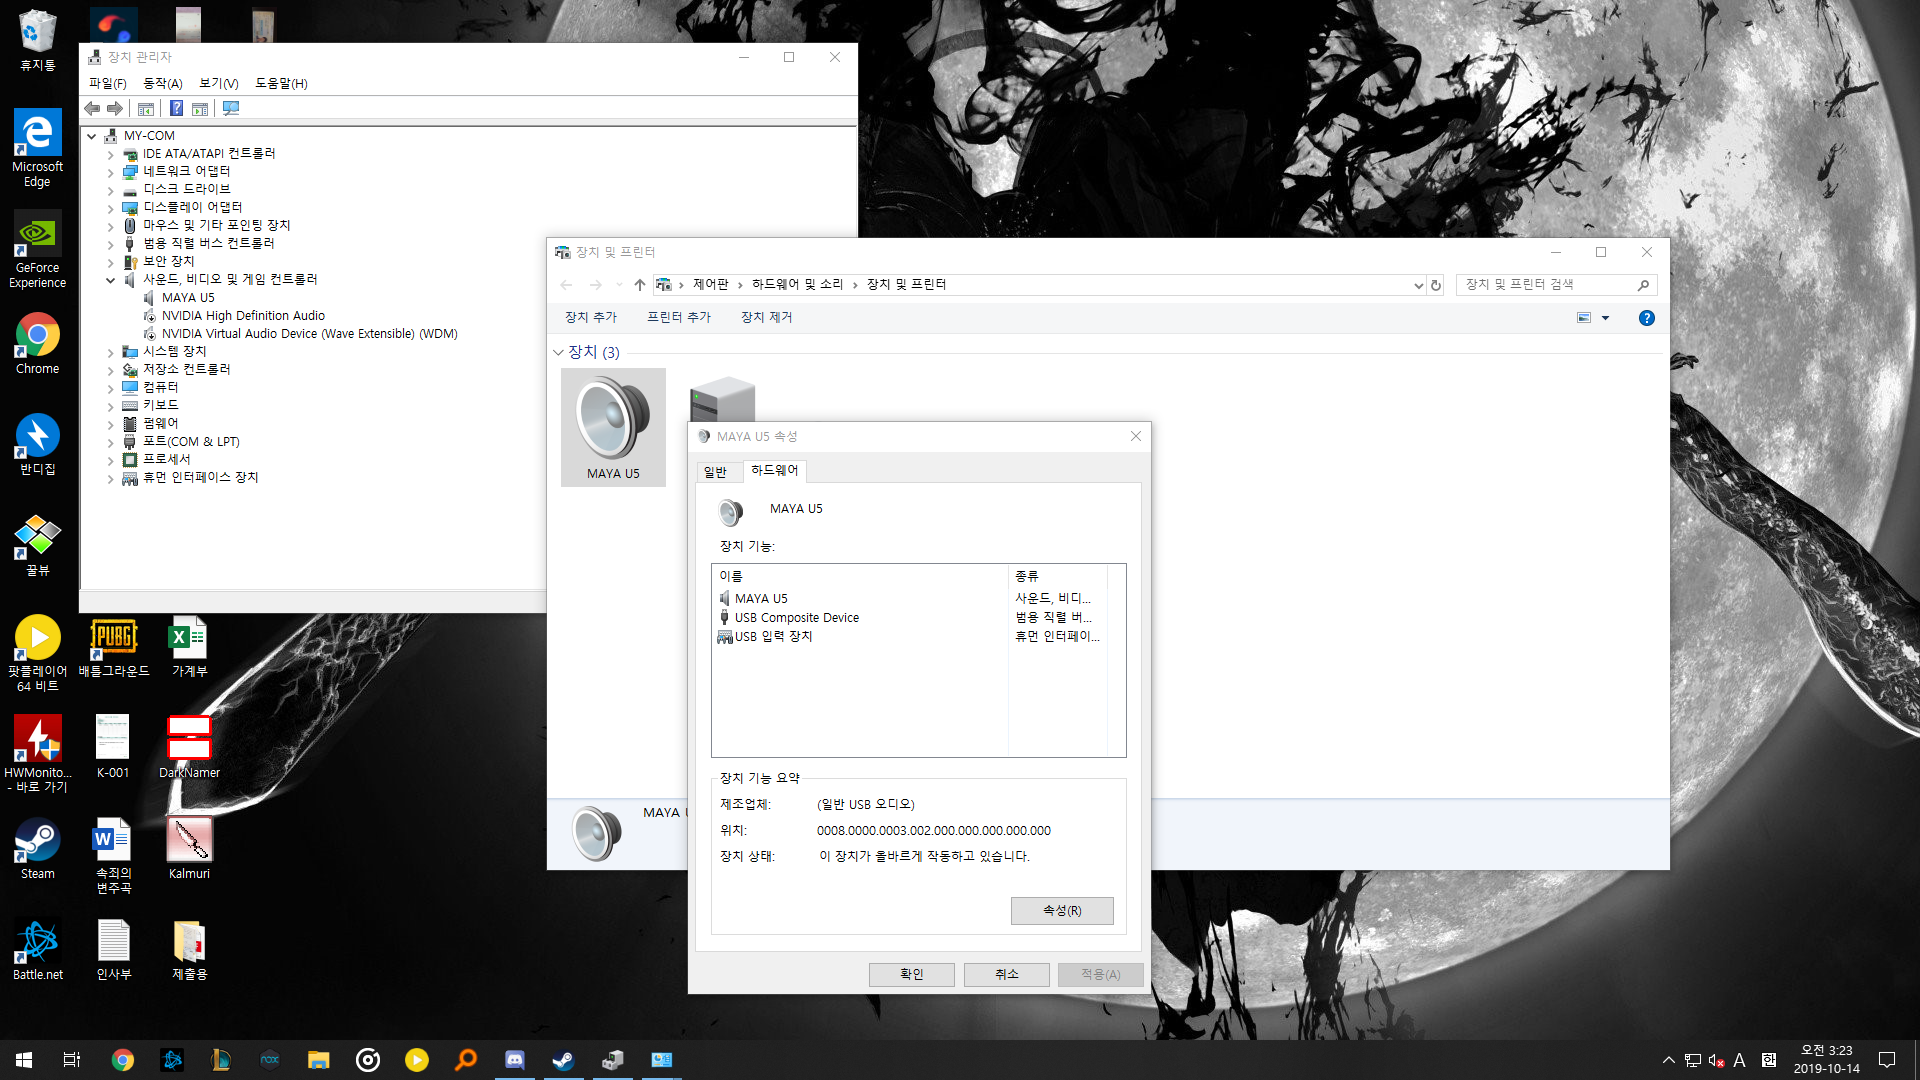 Desktop Screenshot 2019.10.14 - 03.22.54.71.png